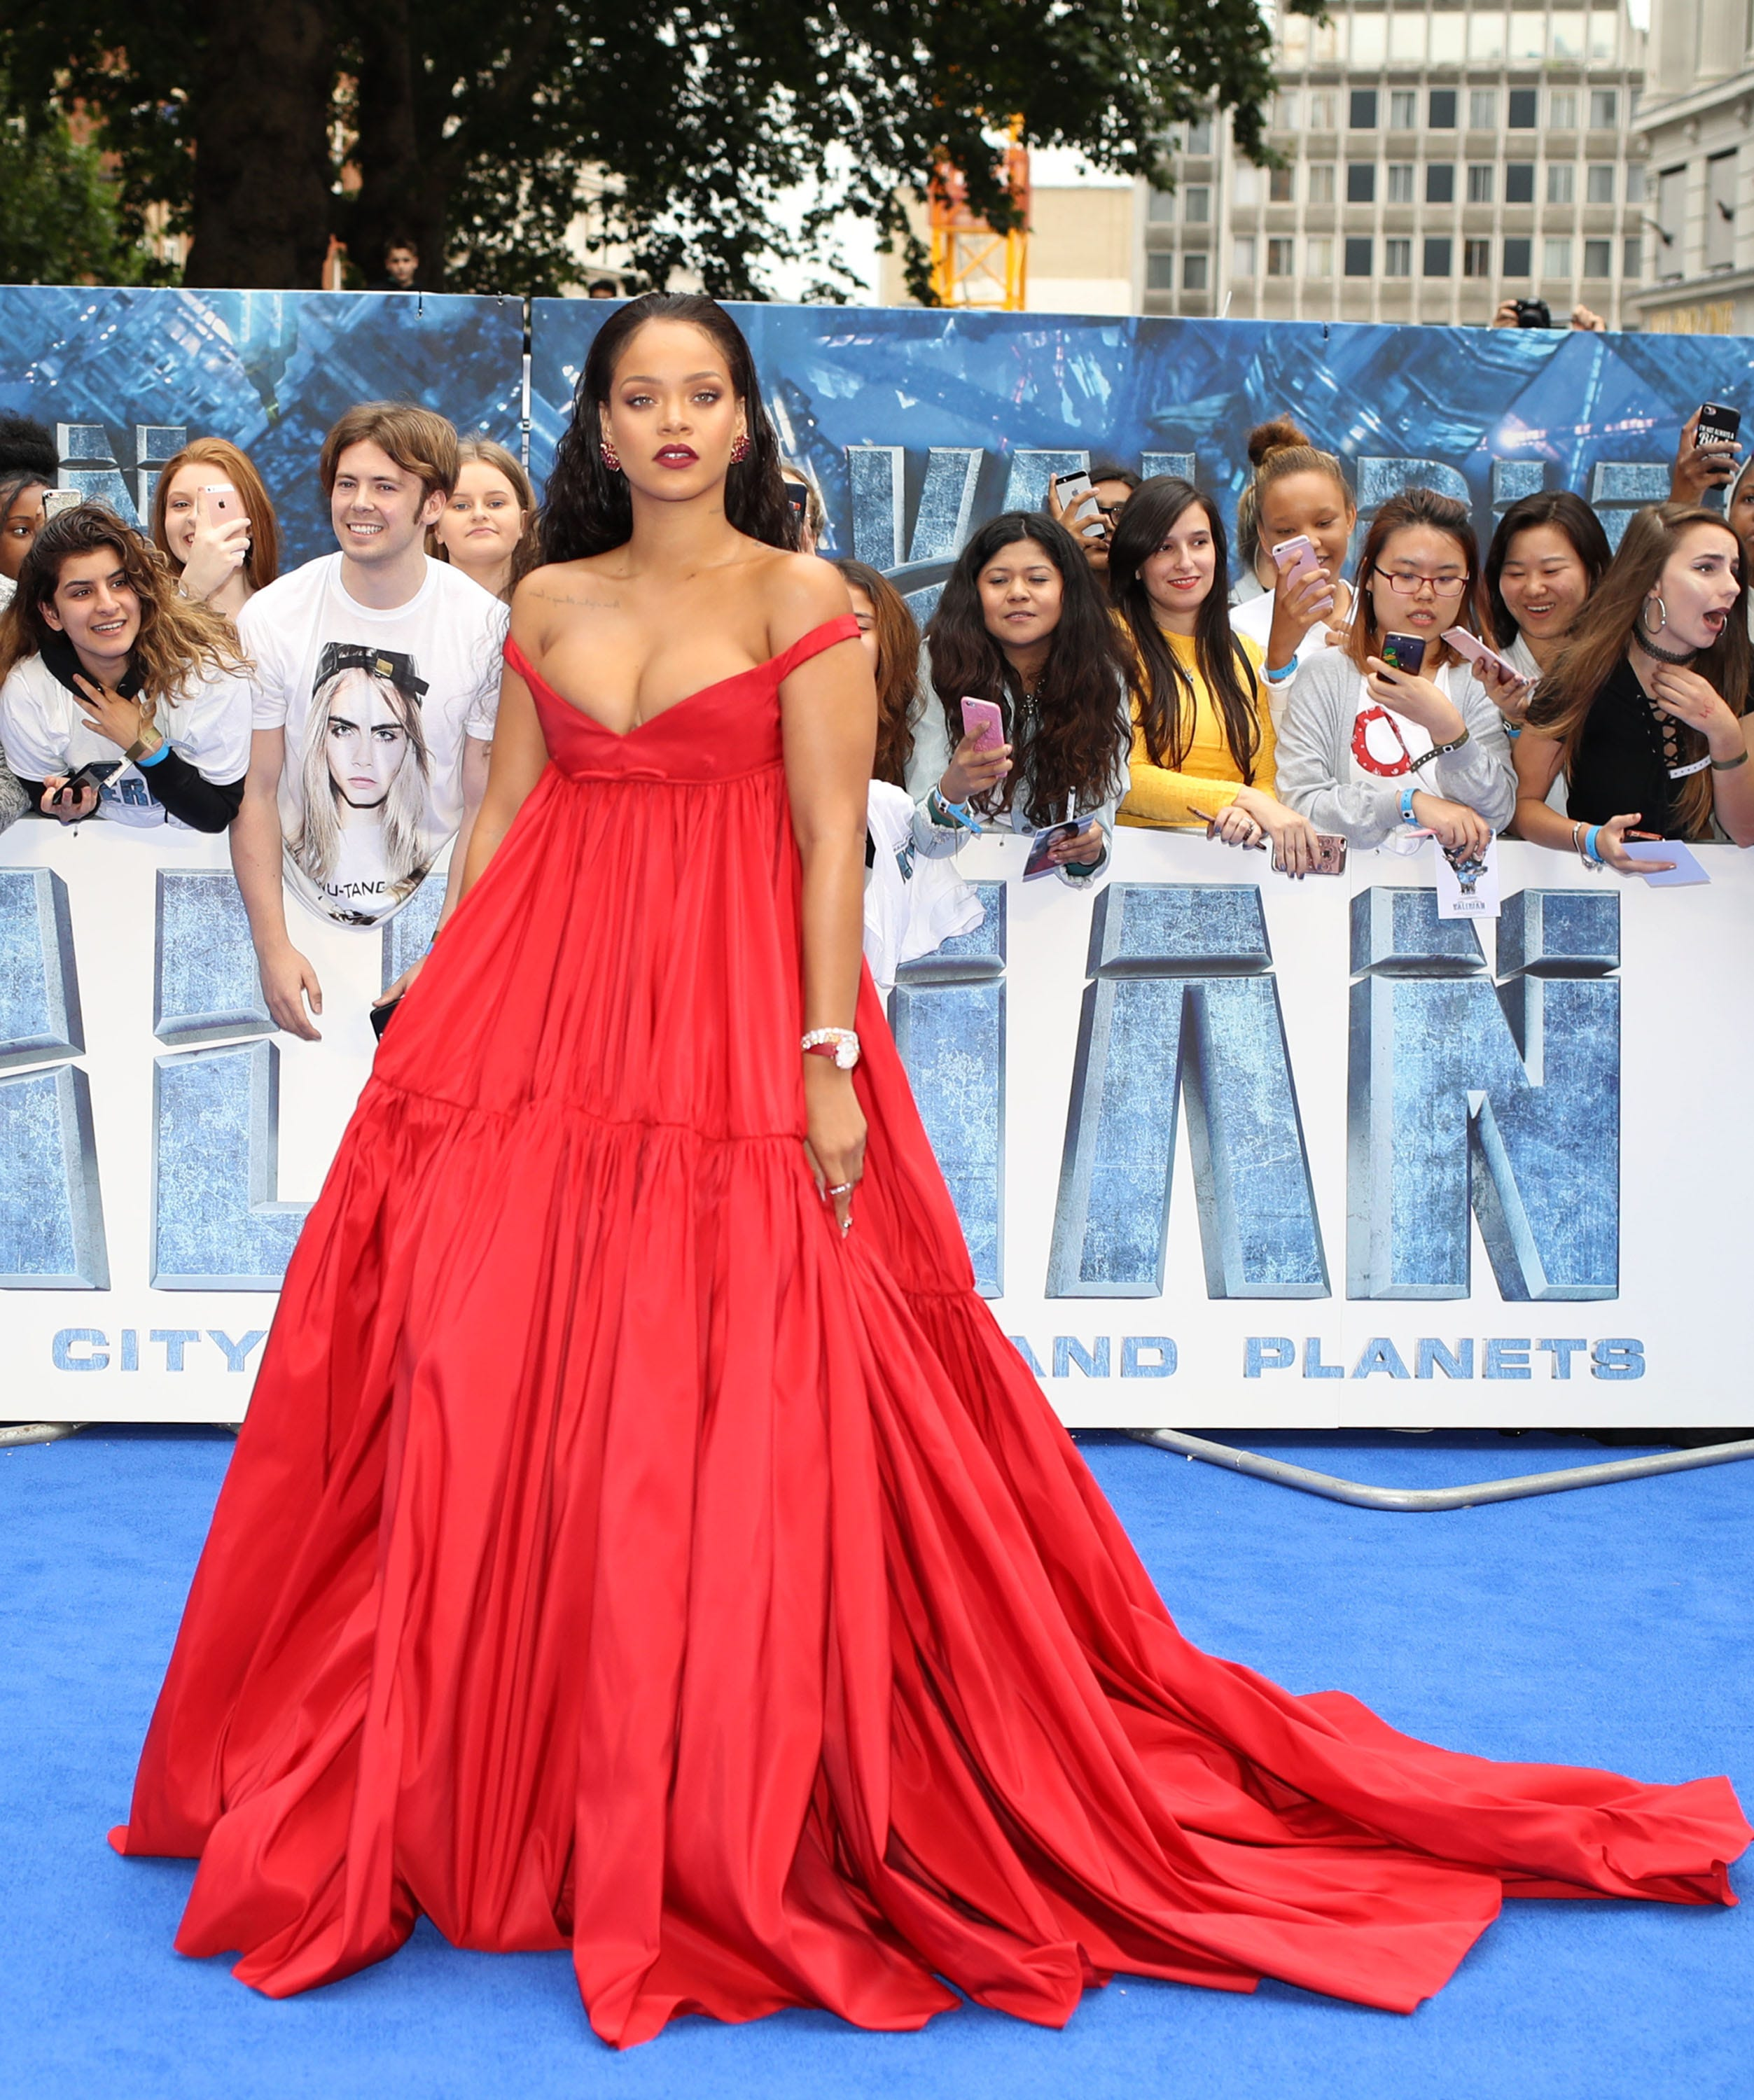 98df8862730f0 Red hot! Celebrities' best red dress looks from Rihanna, Selena Gomez and  more